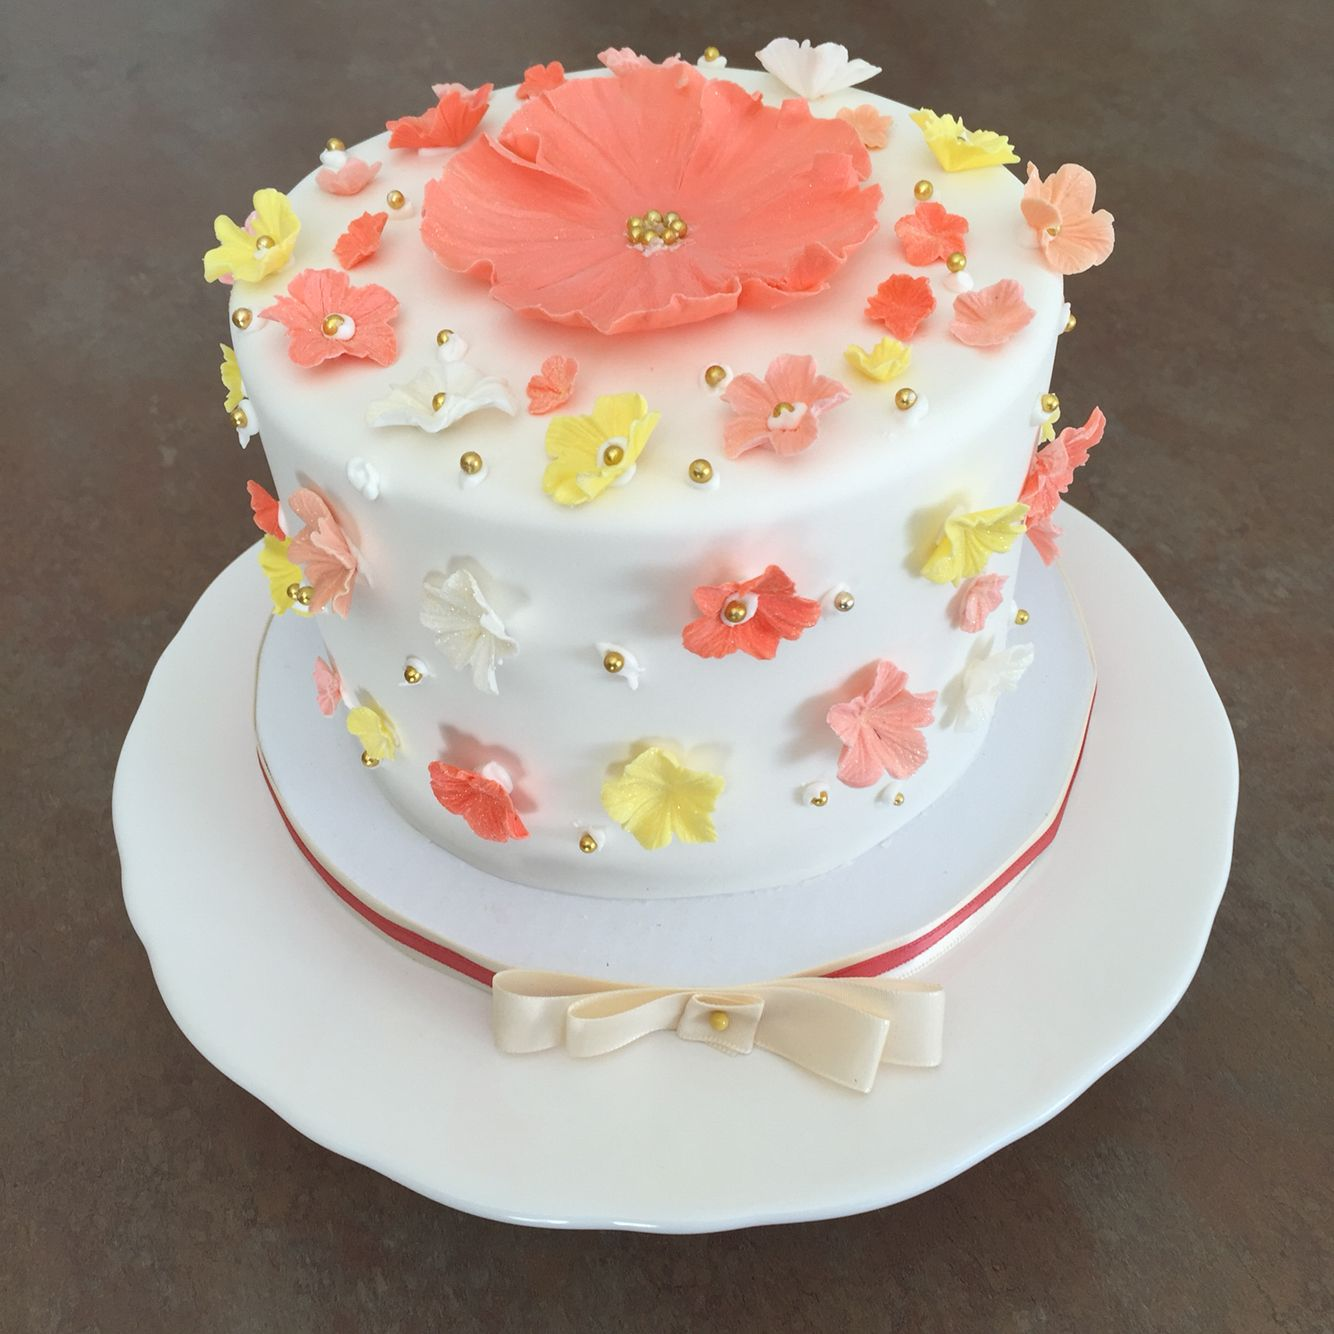 Fine Design Your Own Birthday Cake White Cake With Coral Pink Yellow Funny Birthday Cards Online Inifodamsfinfo